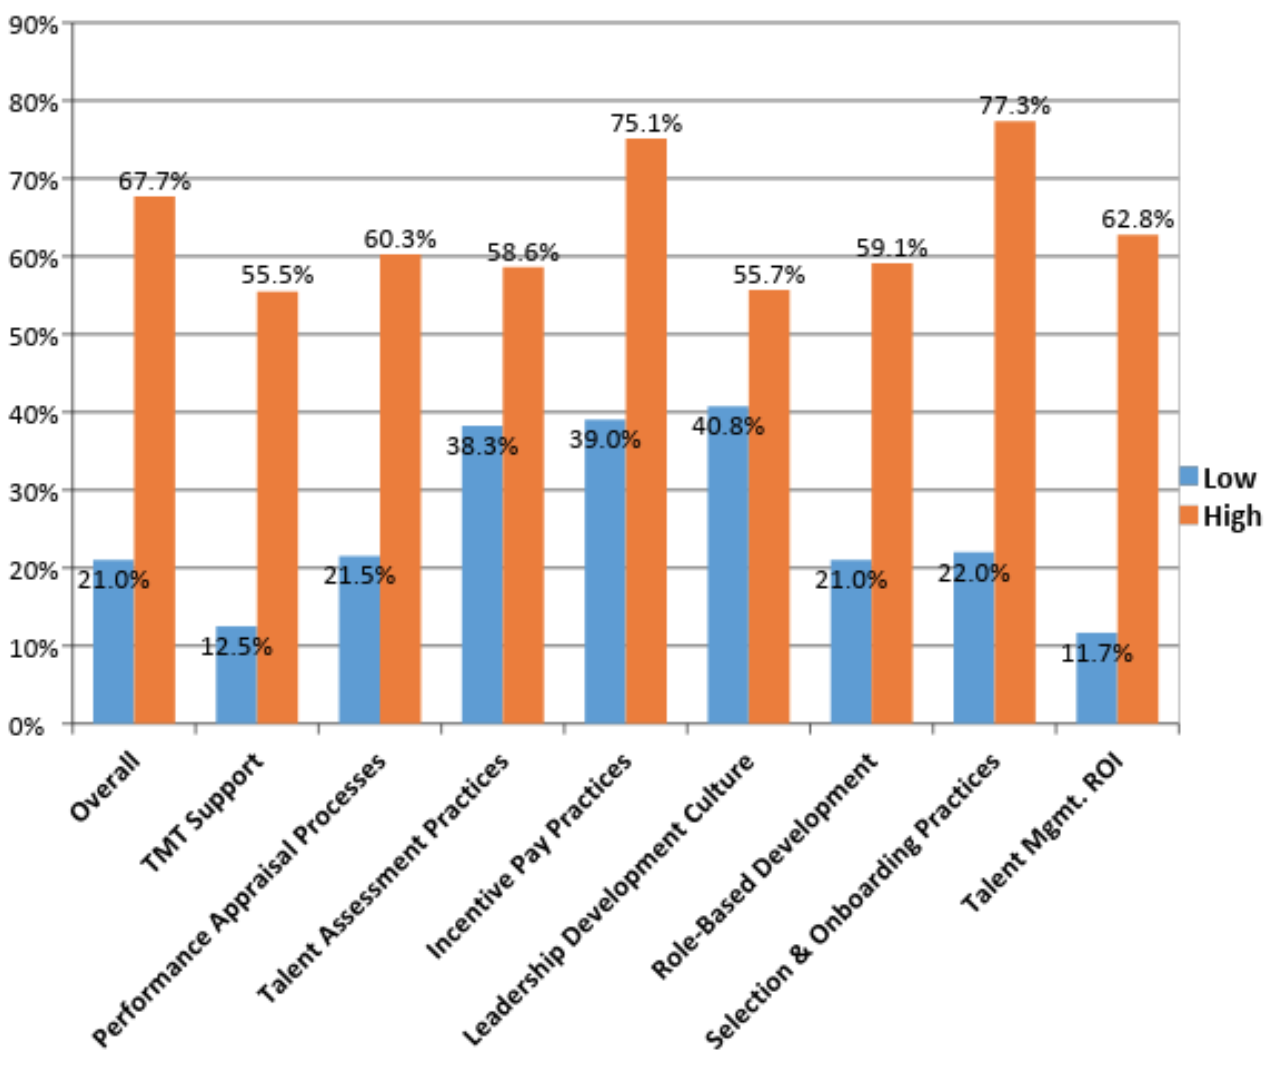 Figure 4 - Note: Hospital organizations that scored at least one standard deviation above the sample mean across each best practice are presented in orange ('High'); hospital organizations that scored at least one standard deviation below the sample mean across each best practice are presented in blue ('Low).